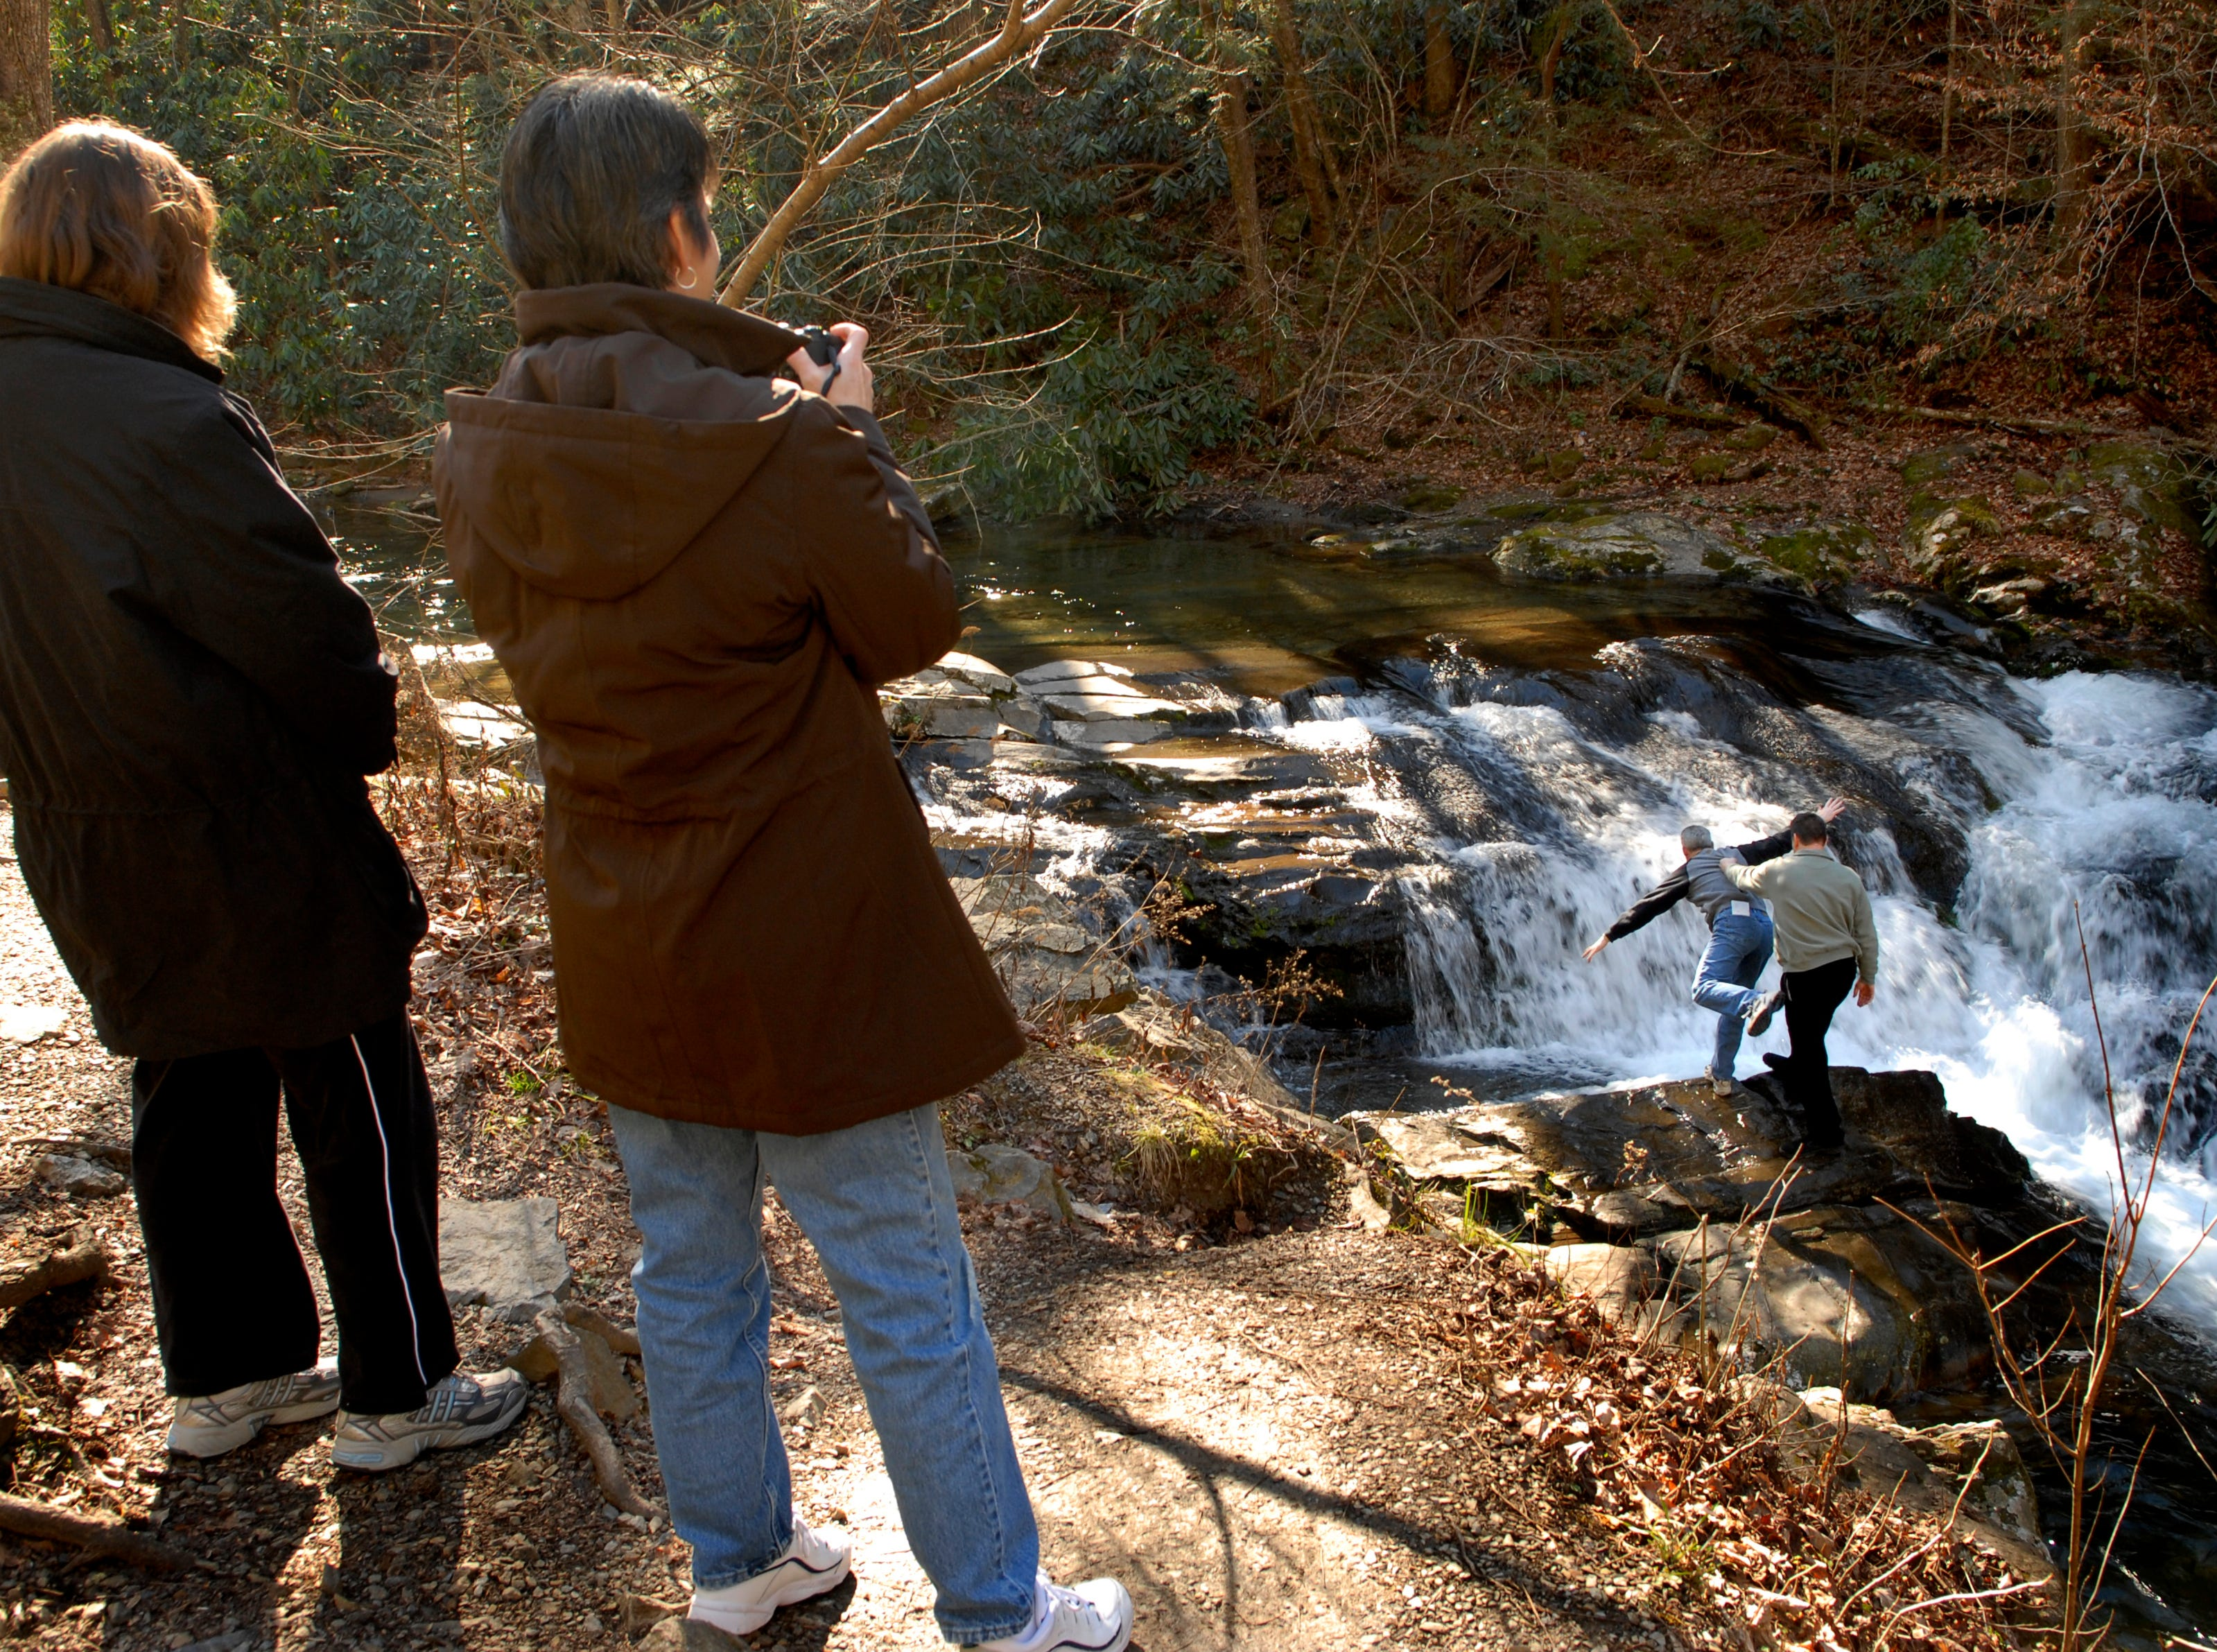 Johnna McDaniel, left, and Miram Williamson look on as their husbands, Mark Williamson and Robert McDaniel play on some rocks near the water along the Laurel Creek Road in the Great Smokey Mountains National Park, Friday. The two couples were visiting the park from Pinehurst, NC. January, 2007